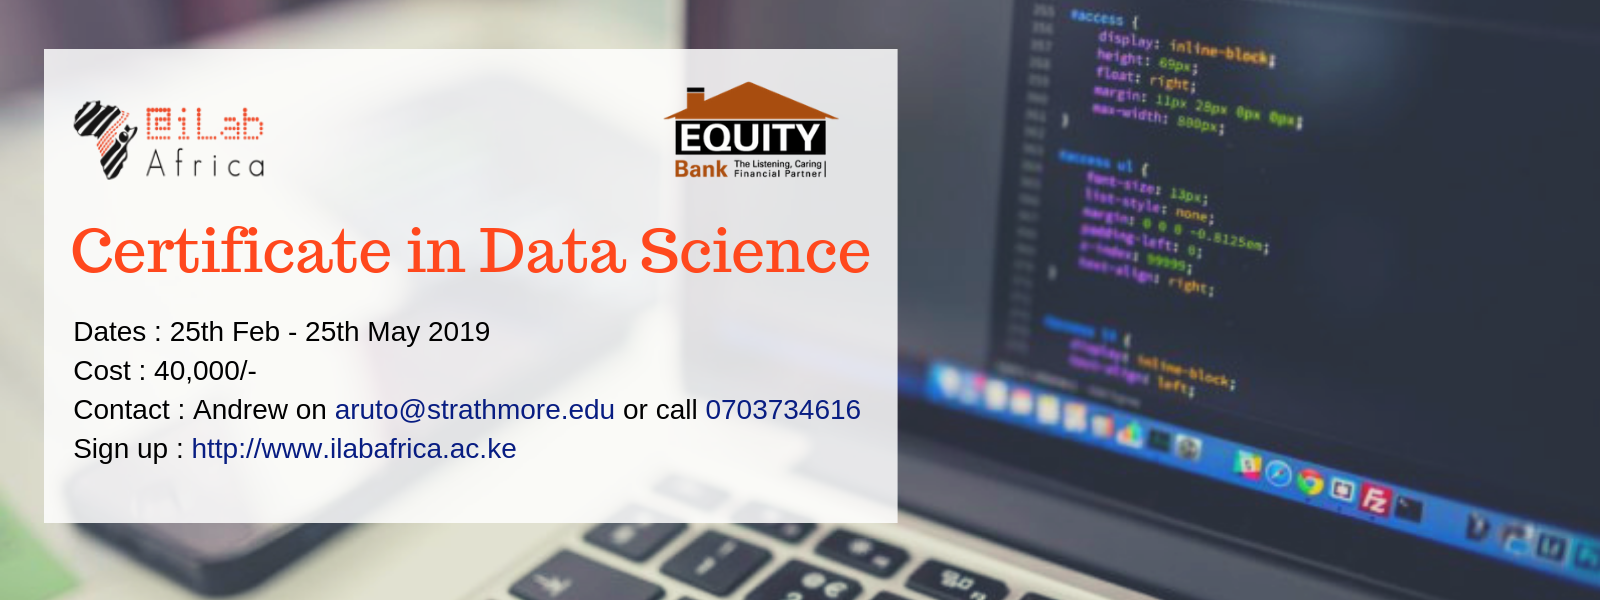 Certificate-in-Data-Science-Web-Banner